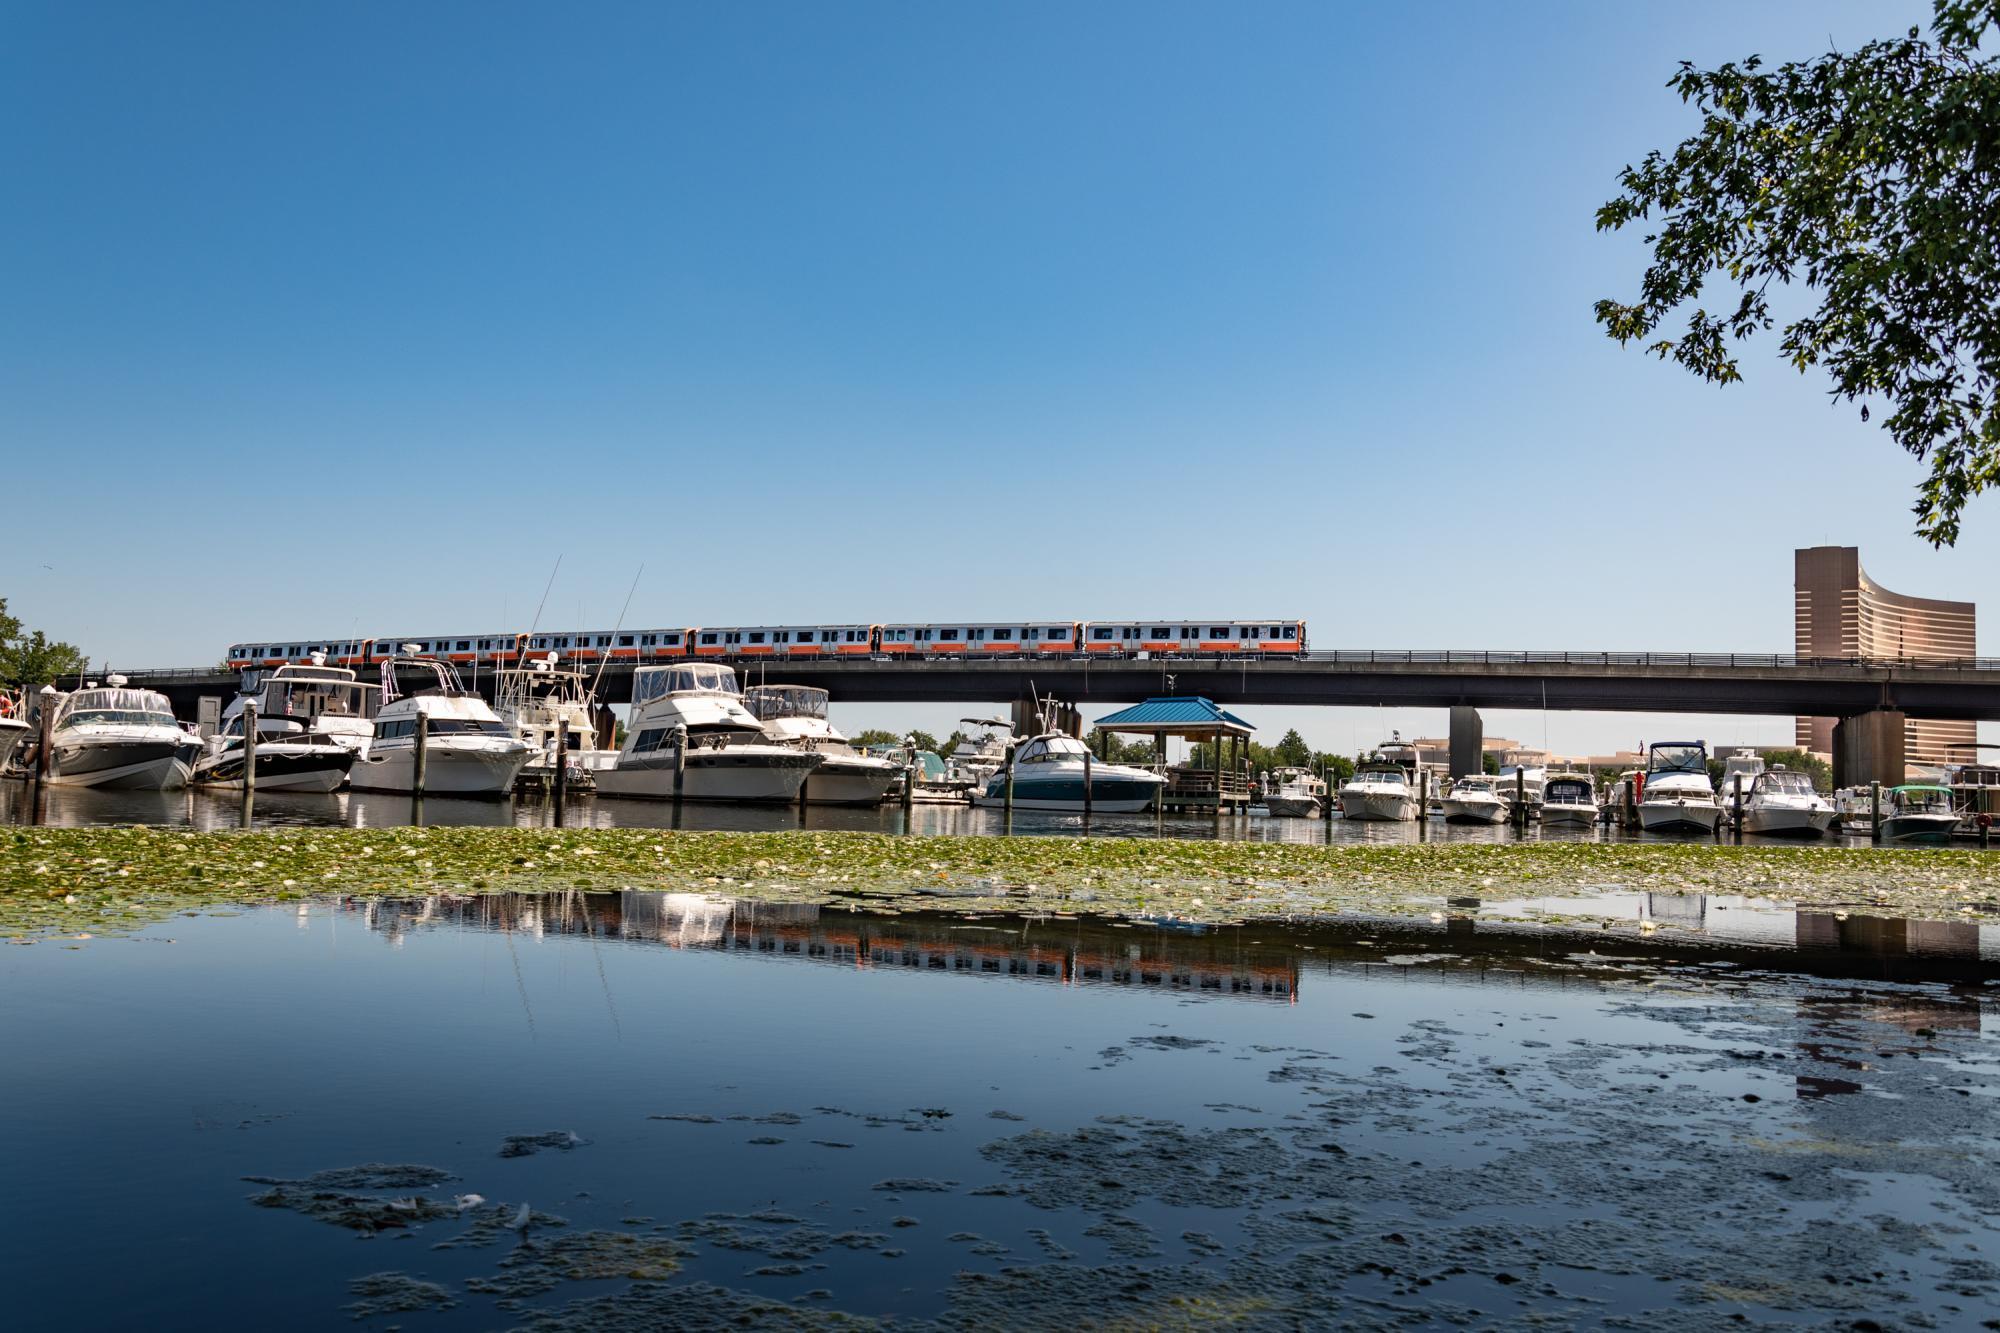 A new Orange Line train travels over the Mystic River, with the Encore casino in the background, boats and water in the foreground, a reflection of the train in the water.